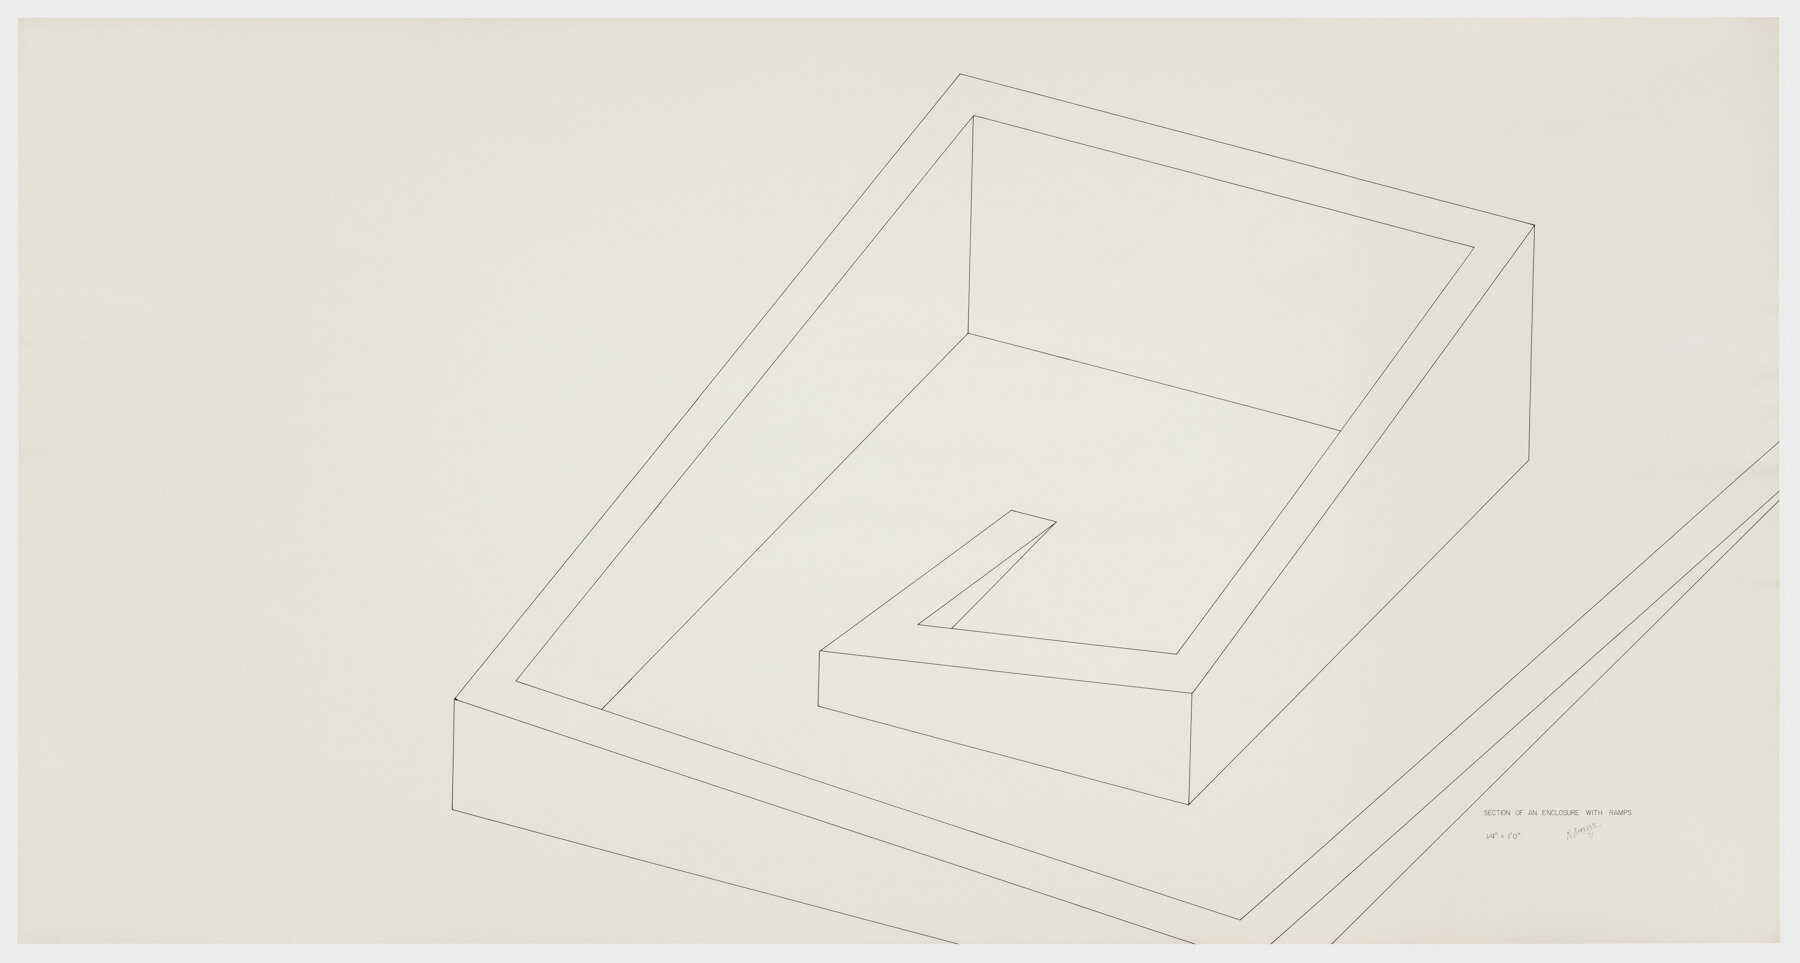 Robert Morris.  Section of an Enclosure with Ramps,  1971. Ink on paper, 42 ¼ x 80 ½ in. (107 x 204 cm). Estate of Robert Morris, courtesy Castelli Gallery, New York. © 2019 The Estate of Robert Morris / Artists Rights Society (ARS), New York. Photo: Stan Narten